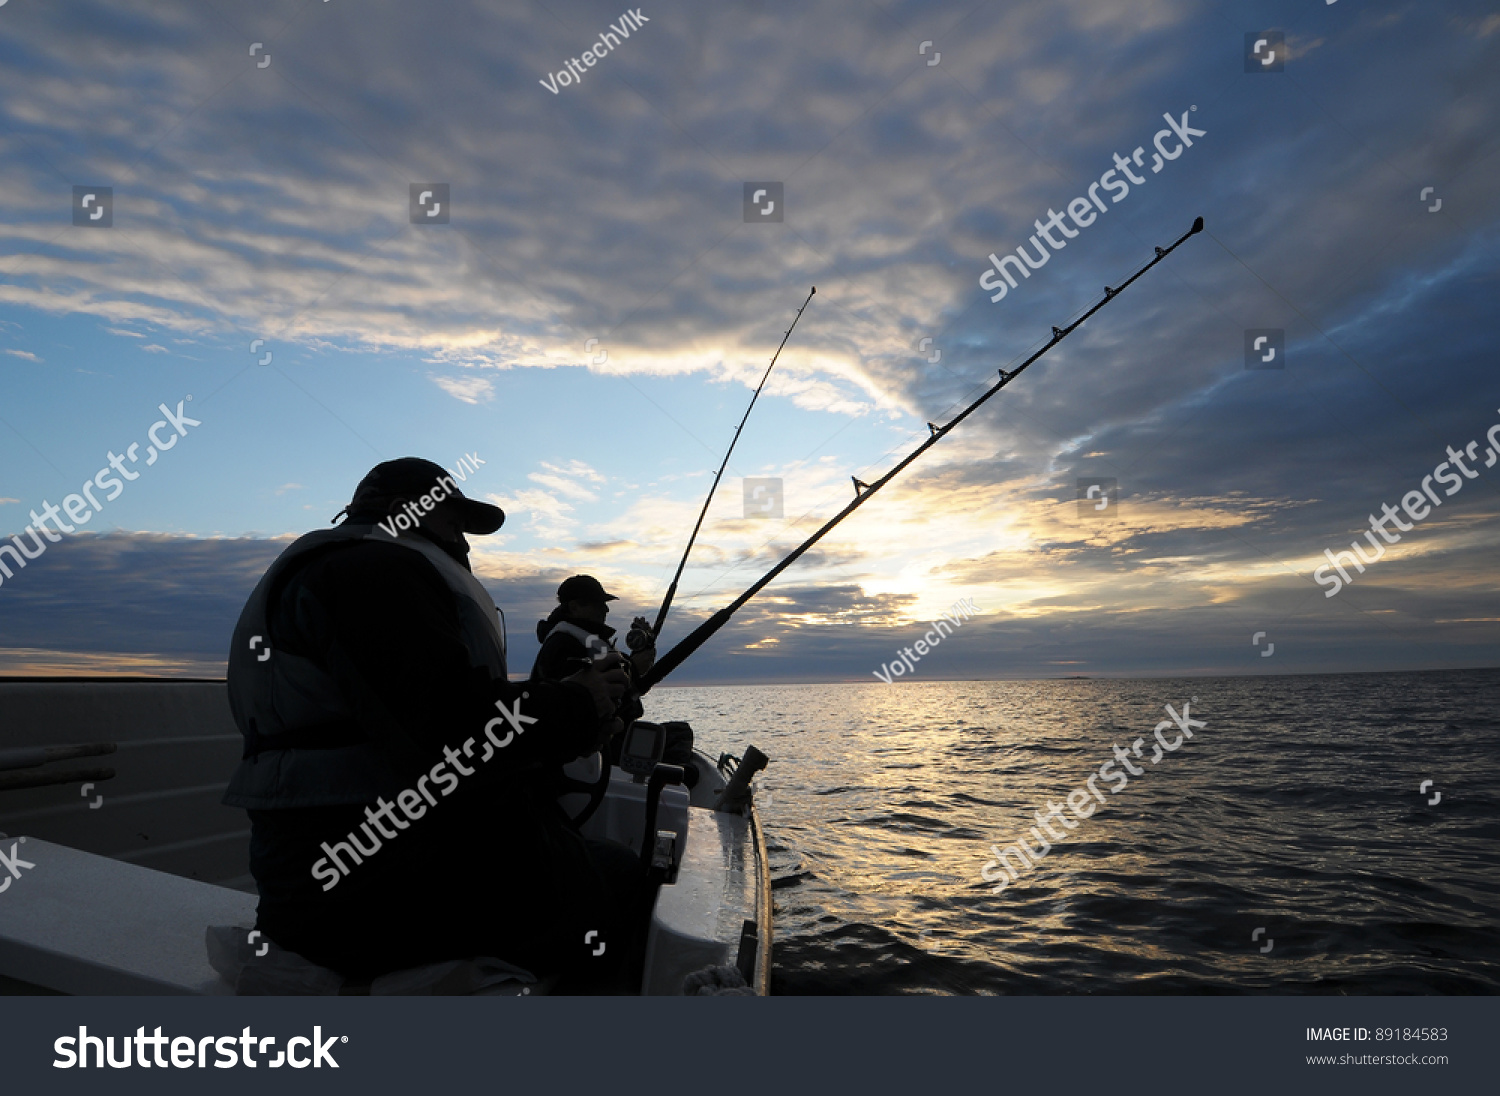 Fishing in norway stock photo 89184583 shutterstock for Fishing in norway